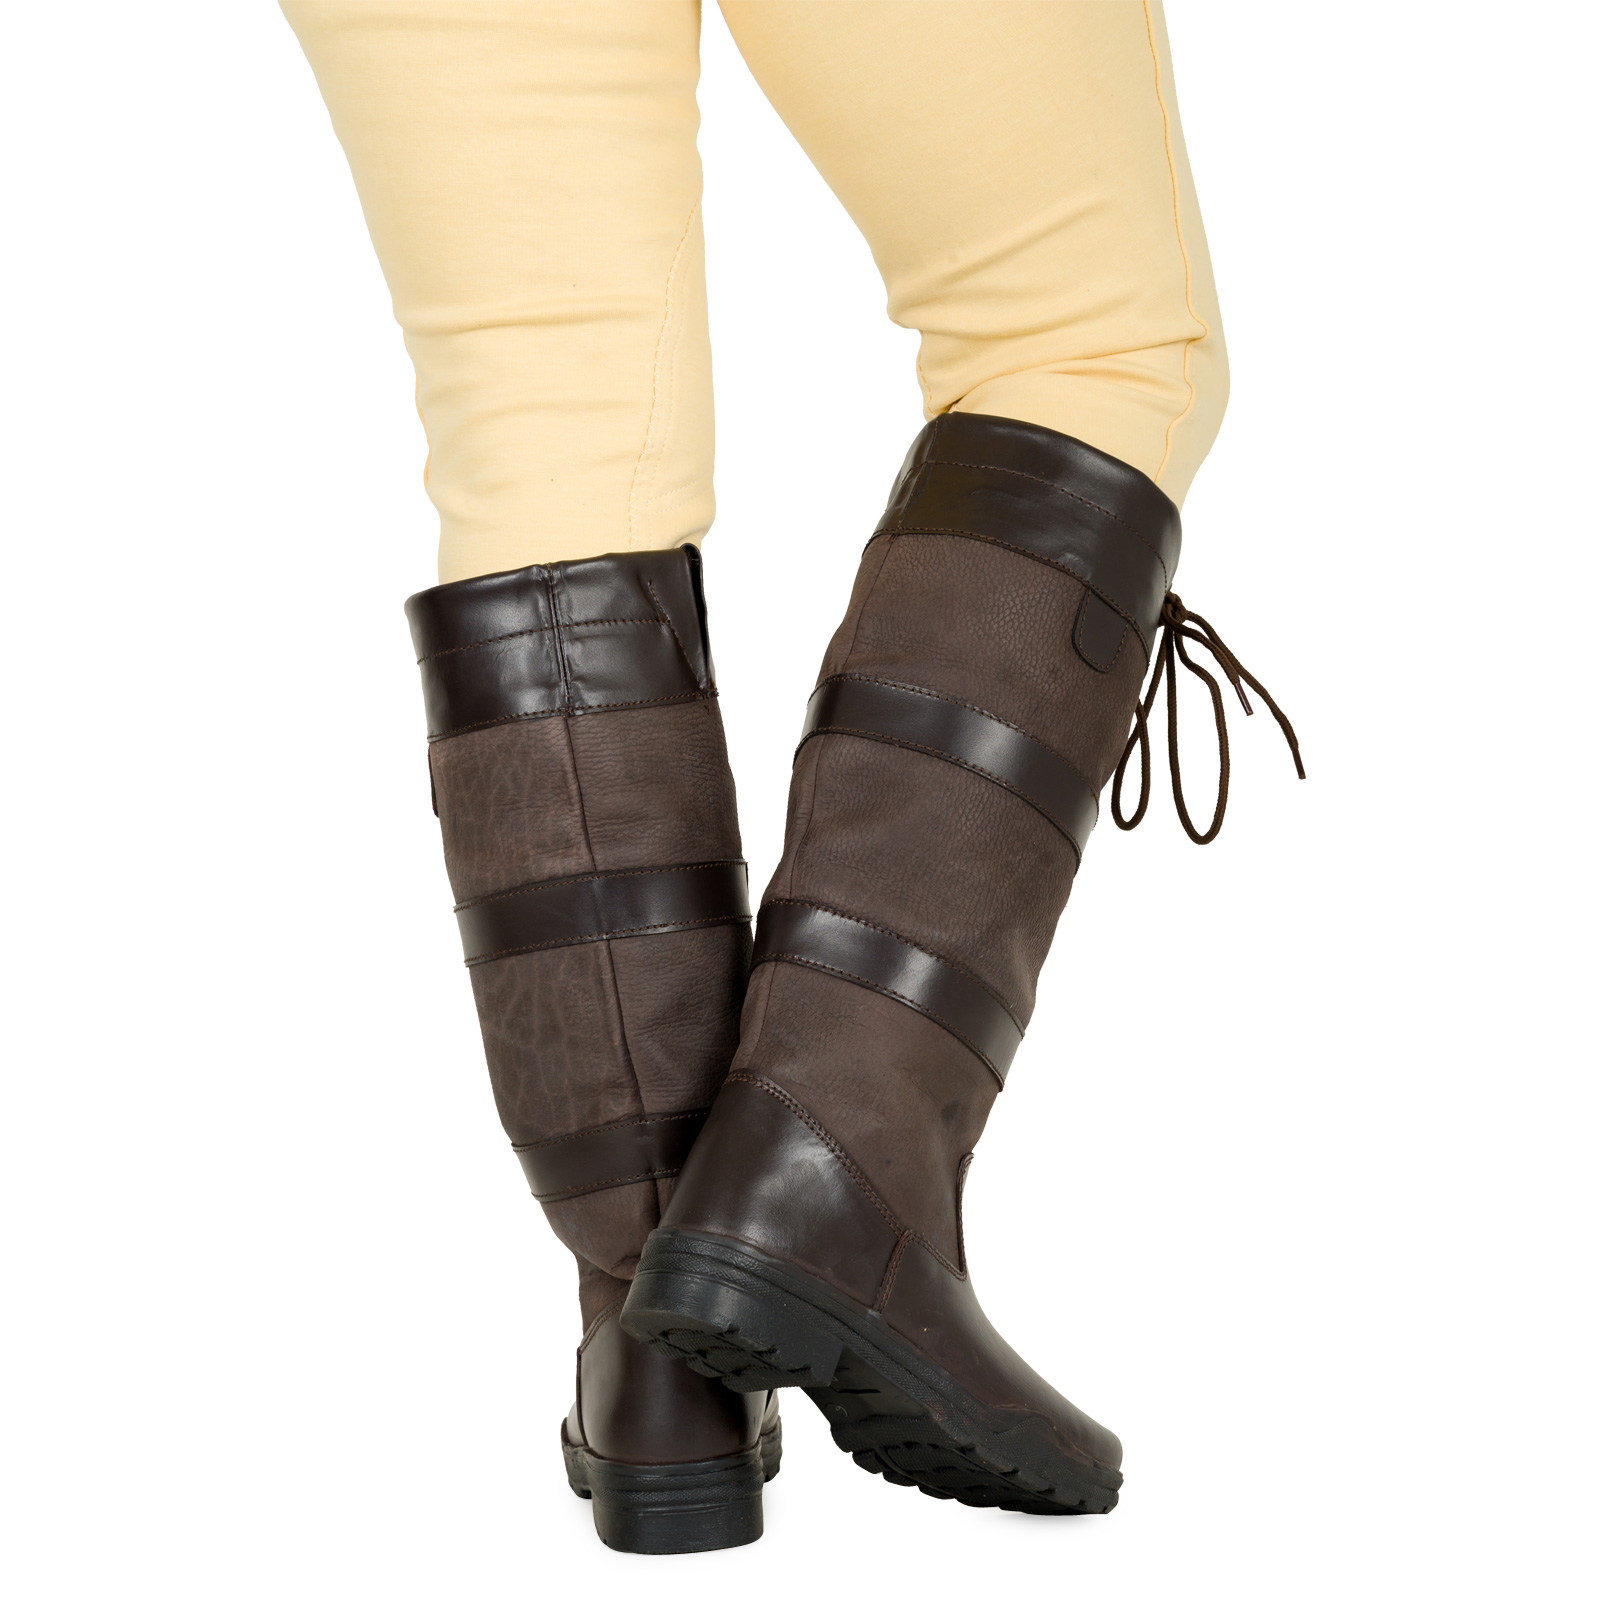 Ladies-Mens-Waterproof-Winter-Horse-Farm-Wellies-Leather-Country-Boots-Size-3-11